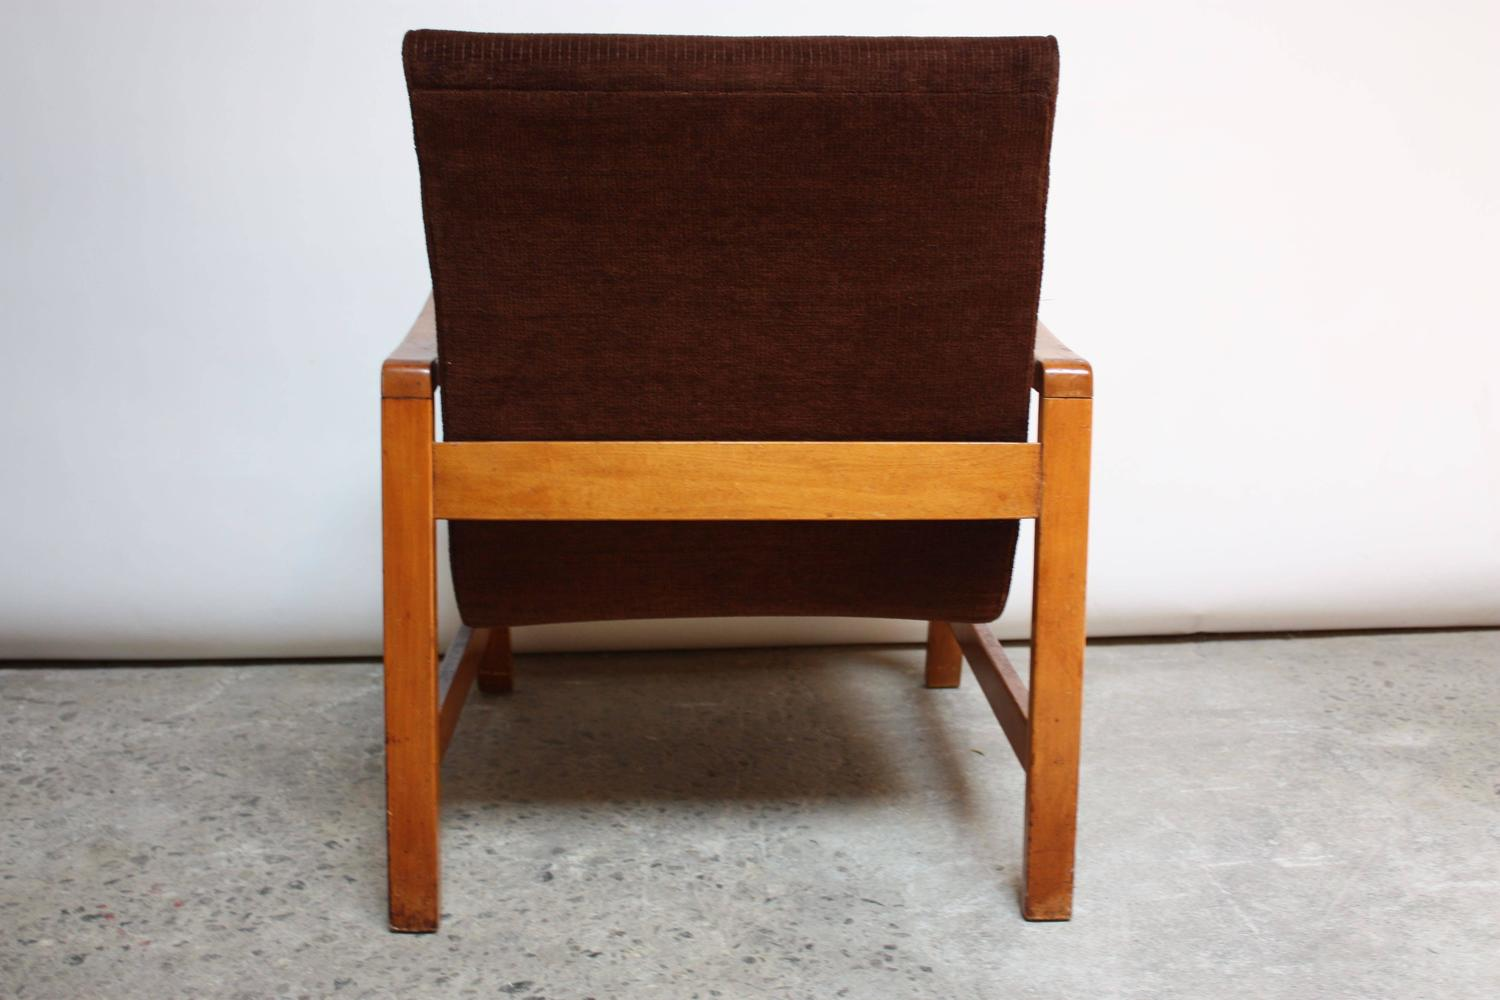 Home / Shop / Chairs / Ottomans / Jens Risom Armchair For Knoll